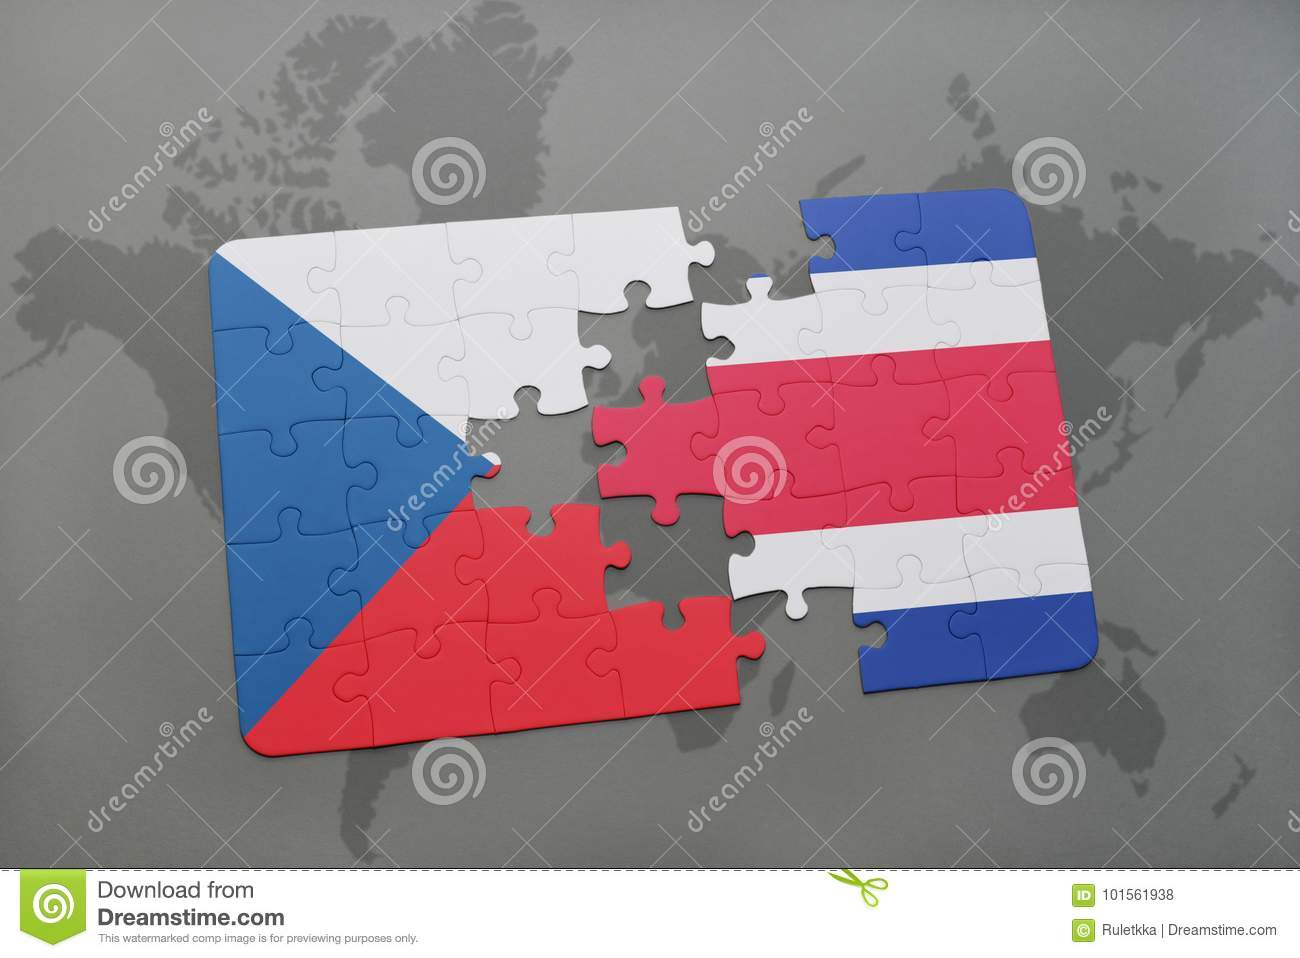 puzzle with the national flag of czech republic and costa rica on a world map